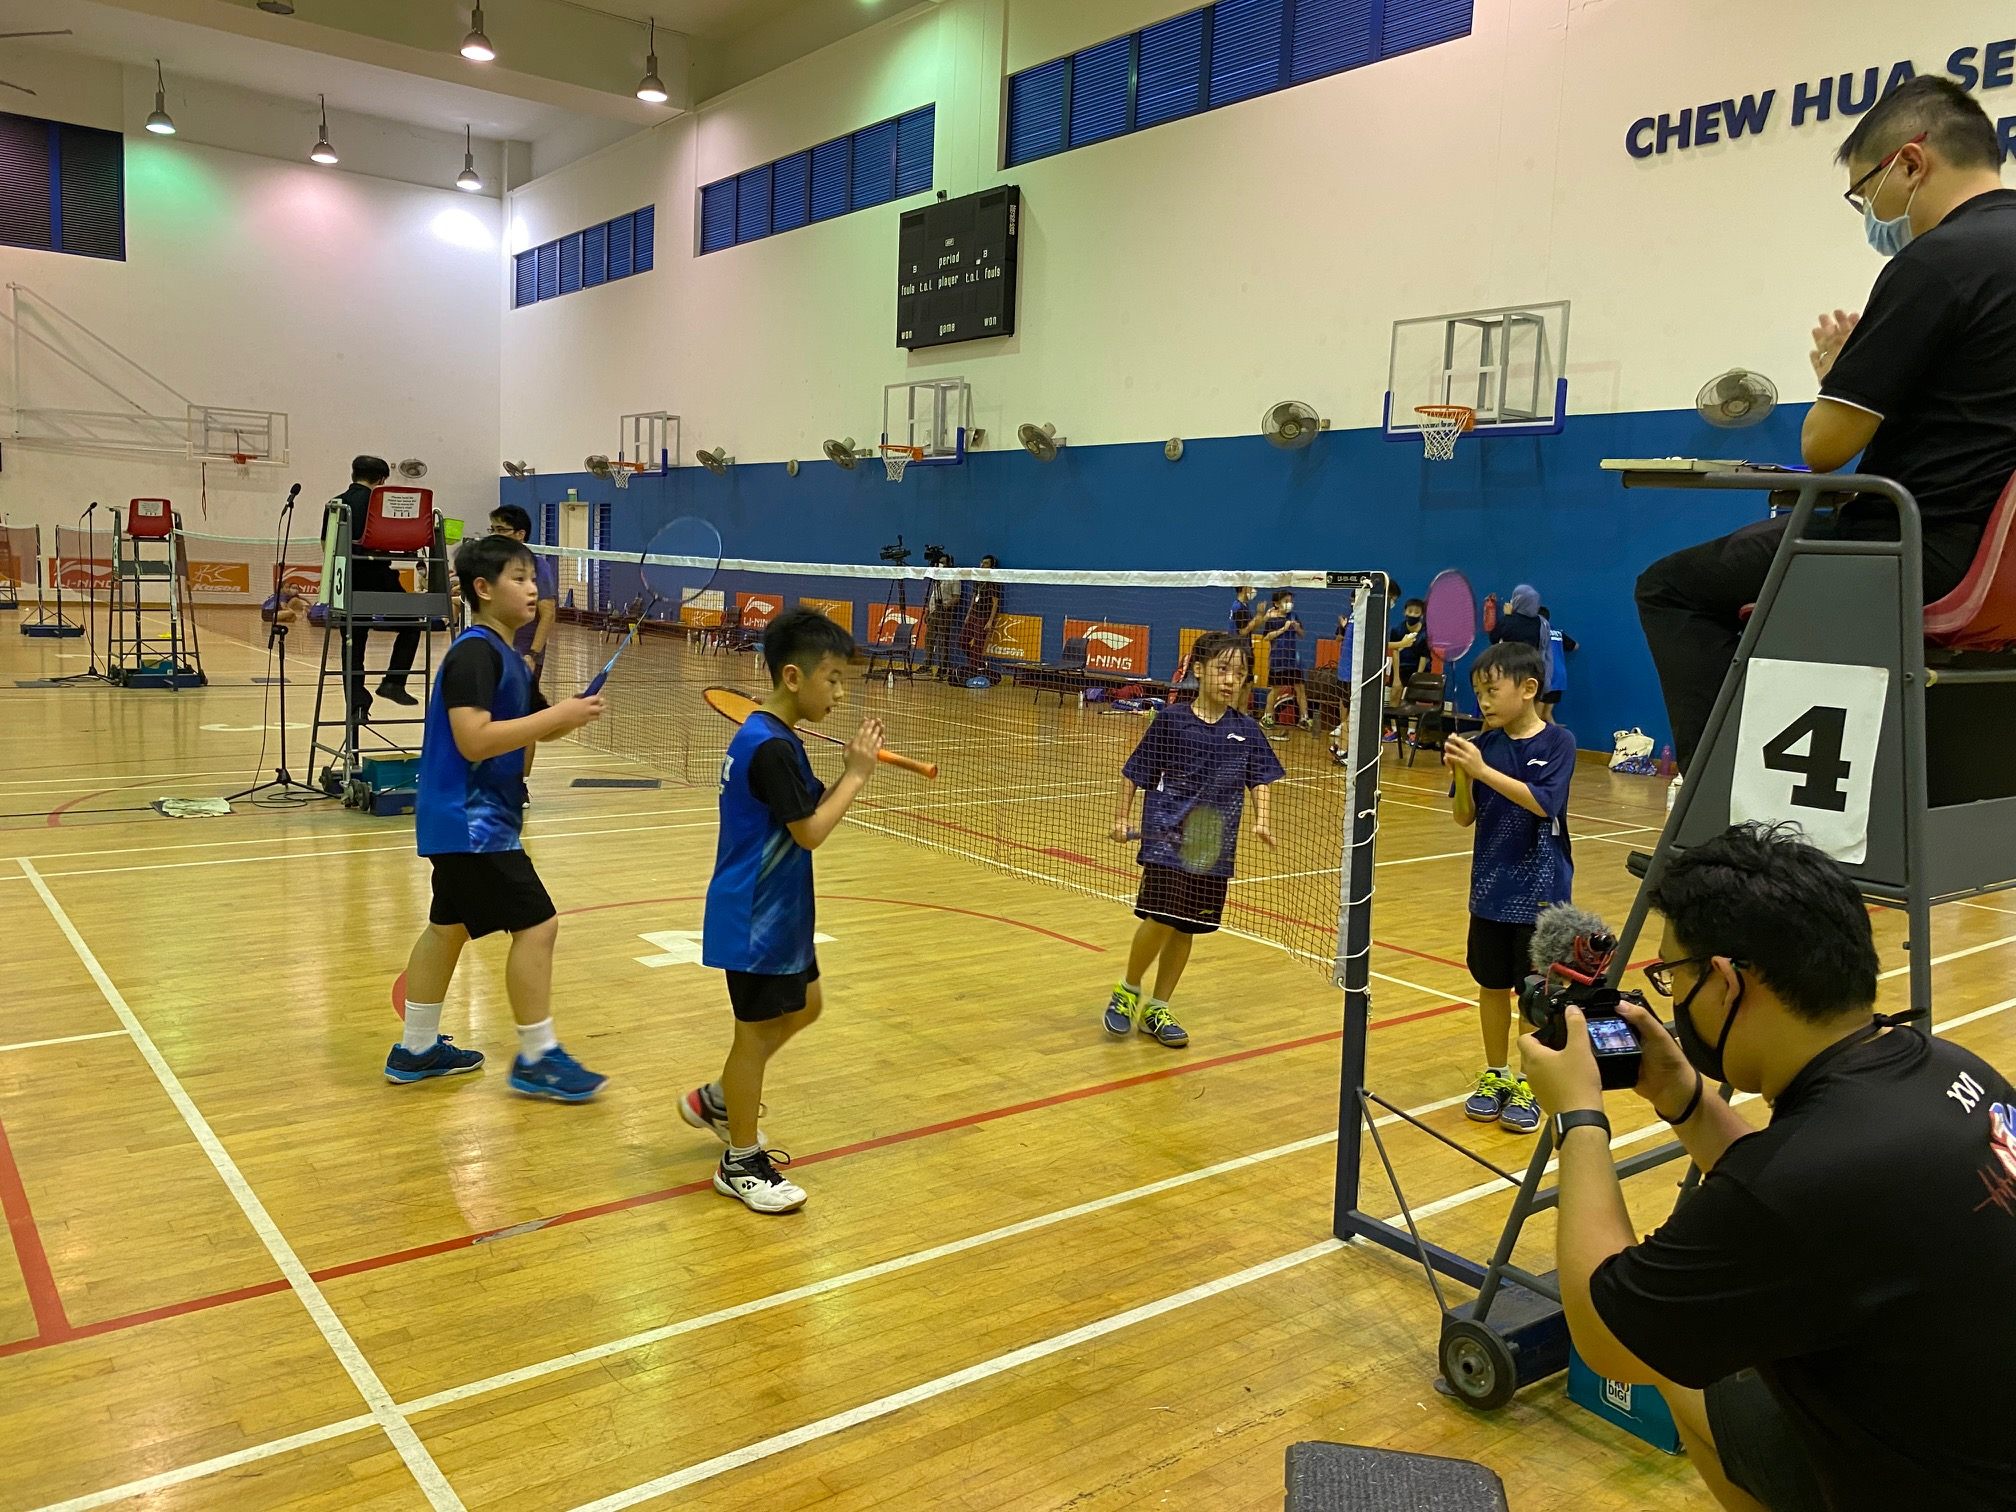 NSG Snr Div North Zone boys' badminton final - second doubles end of match